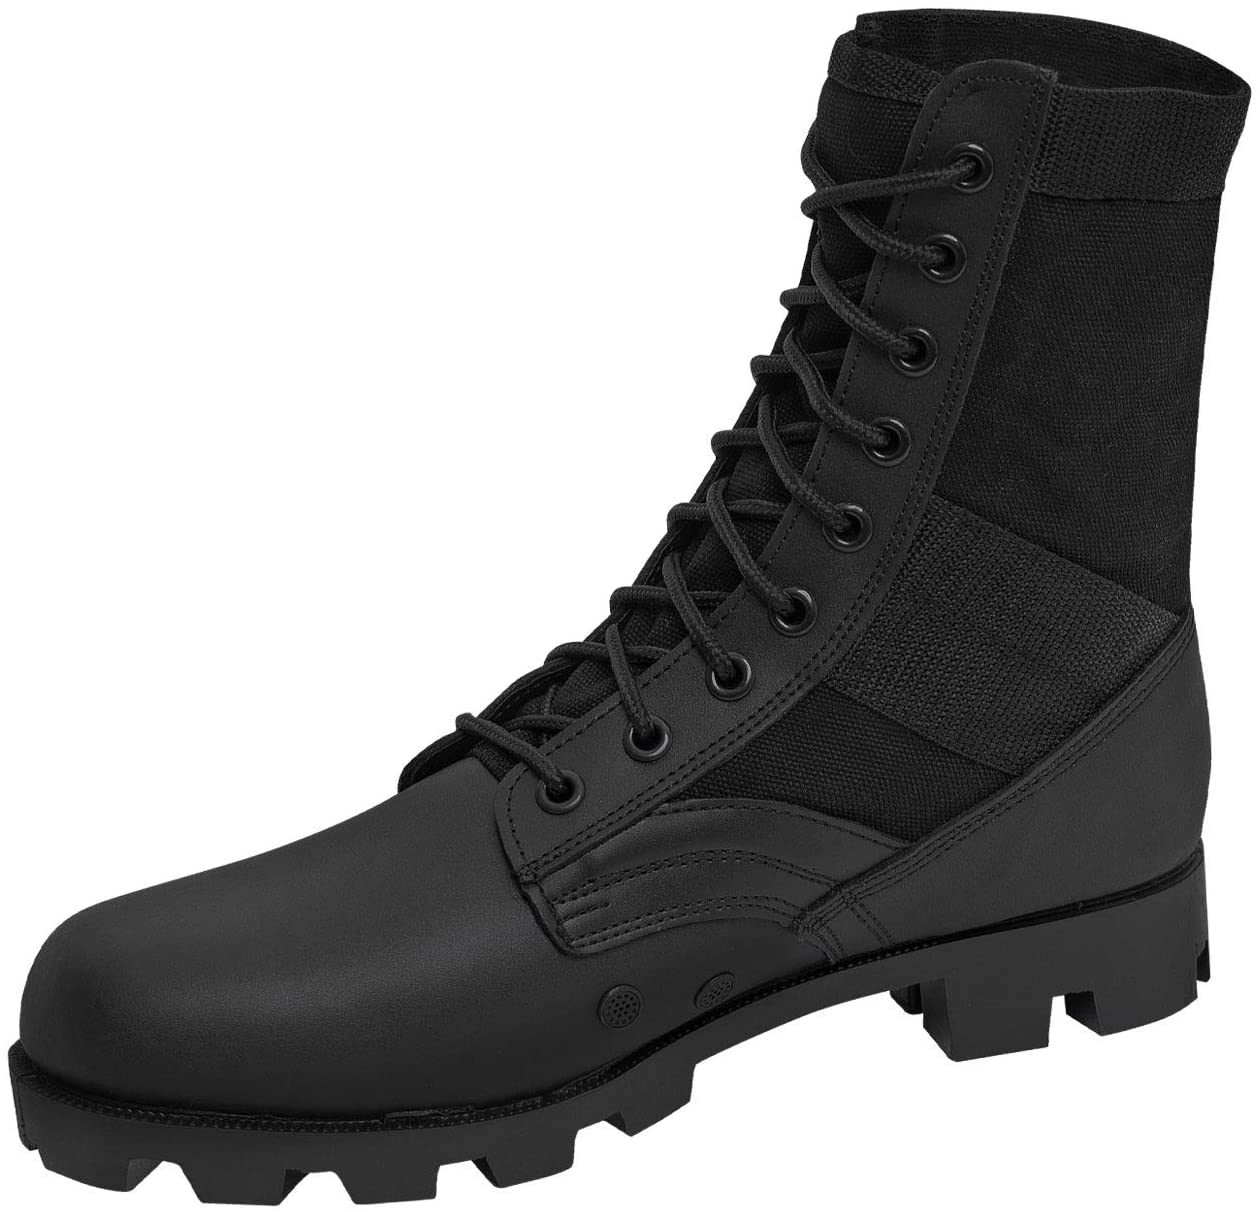 JUNGLE PATROL COMBAT BOOTS BLACK GREEN DESERT ARMY MILITARY LEATHER NYLON SUEDE